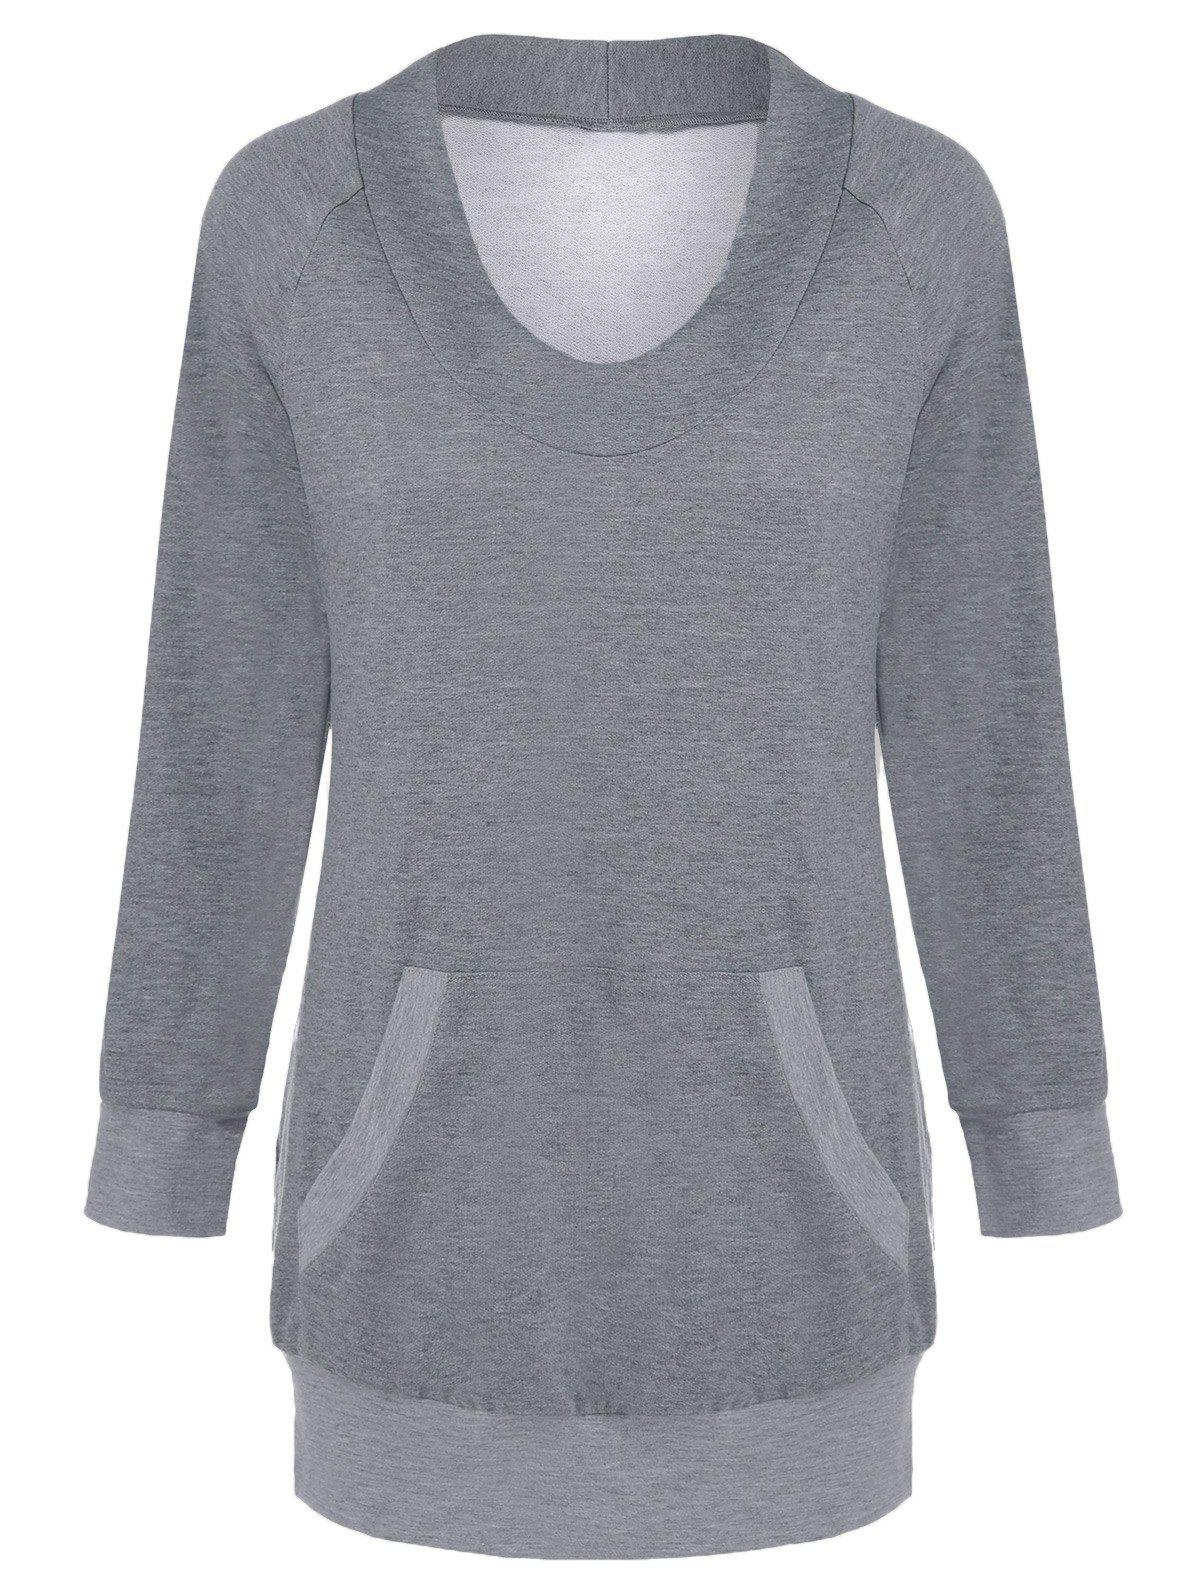 Image of Long Sleeve Tee With Pocket